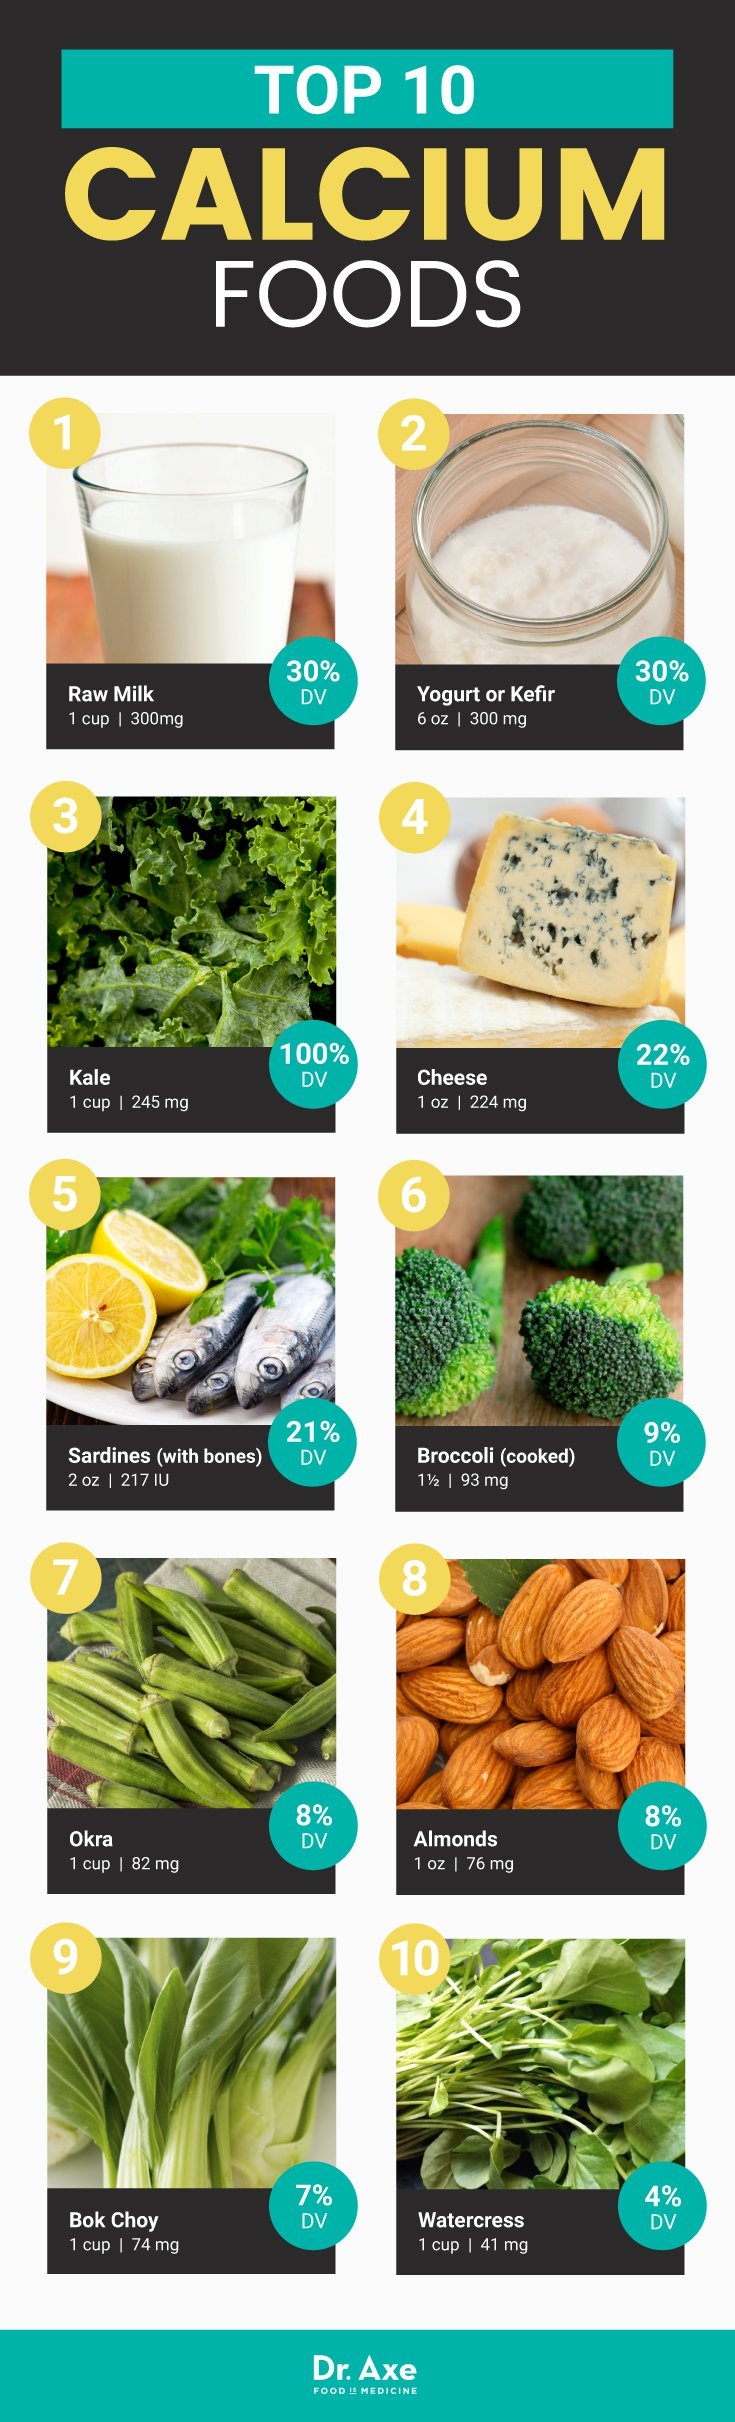 calcium foods and sources